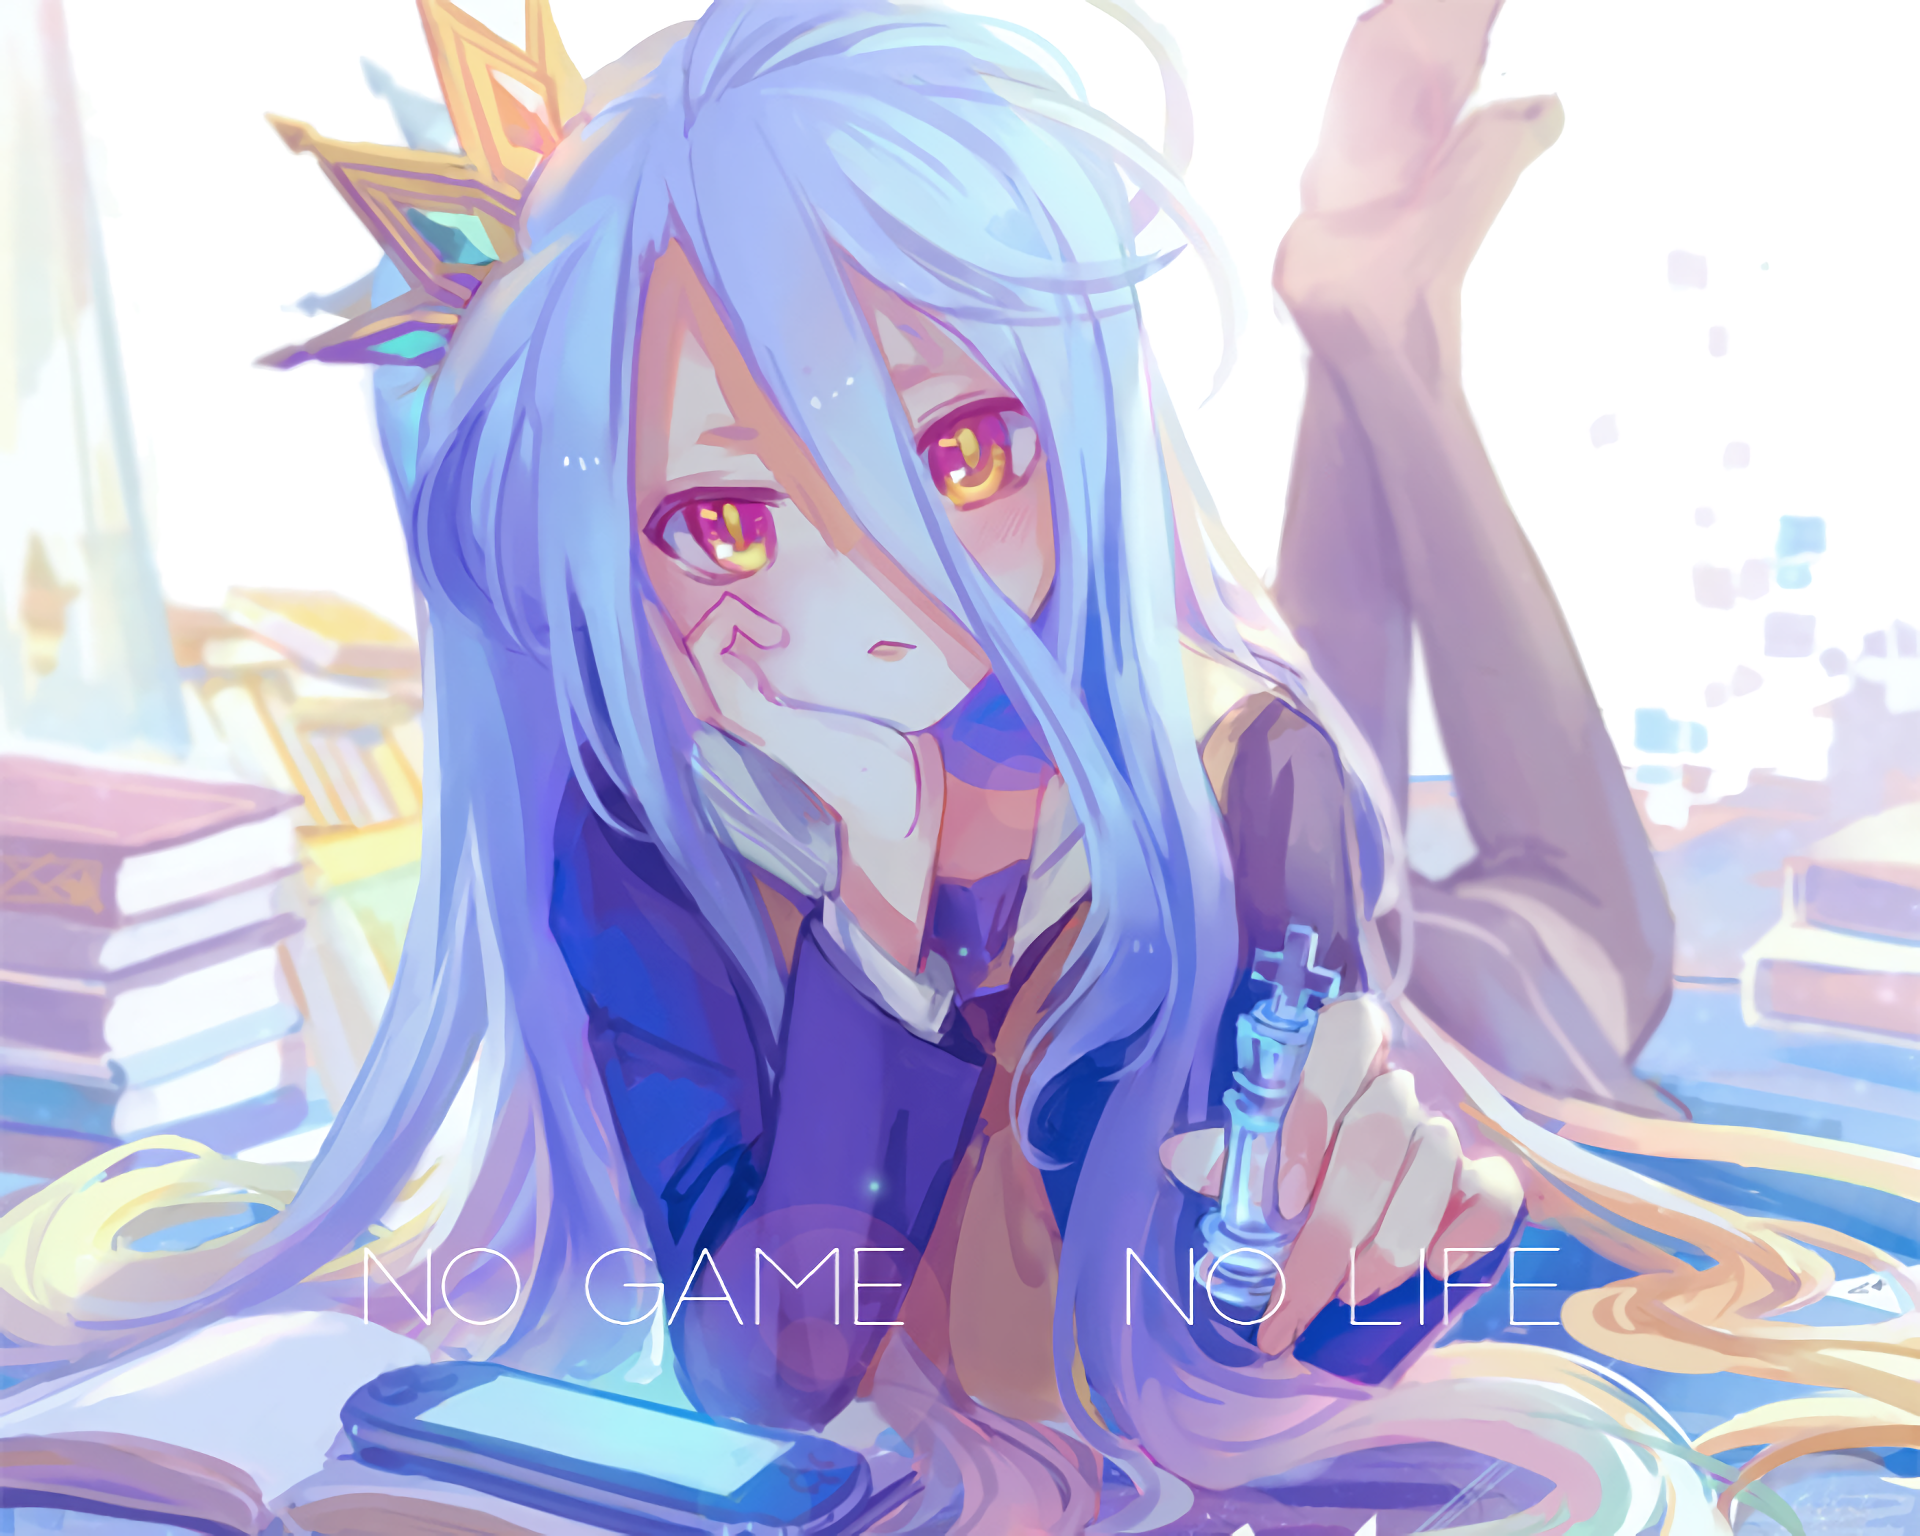 694 No Game No Life HD Wallpapers